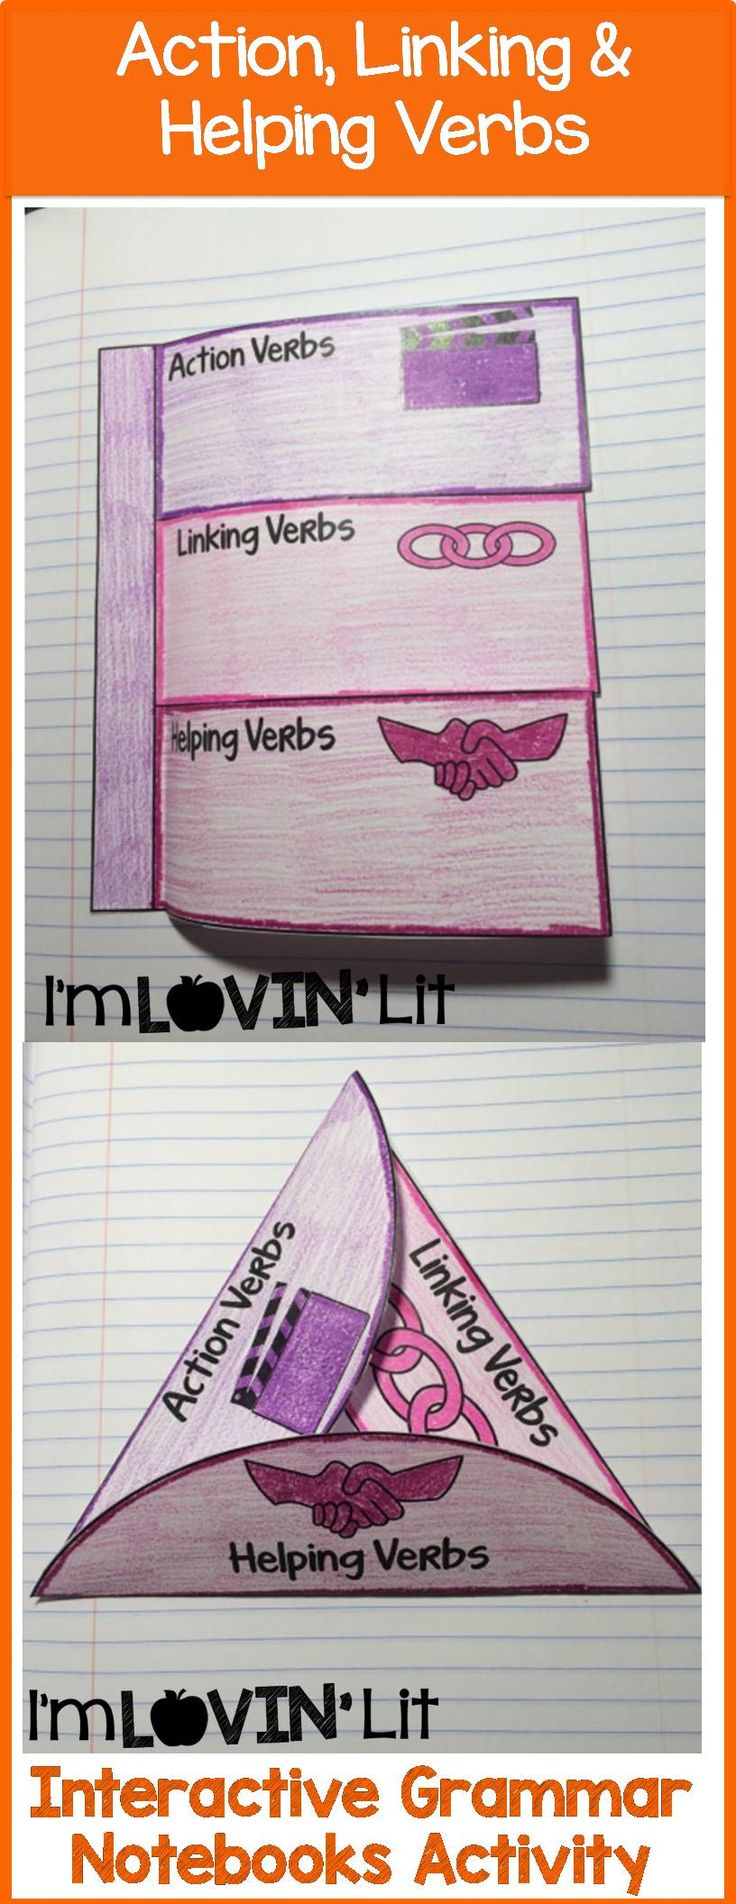 Action, Linking & Helping Verbs Interactive Notebook Activity, Foldable, Organizer, Lesson